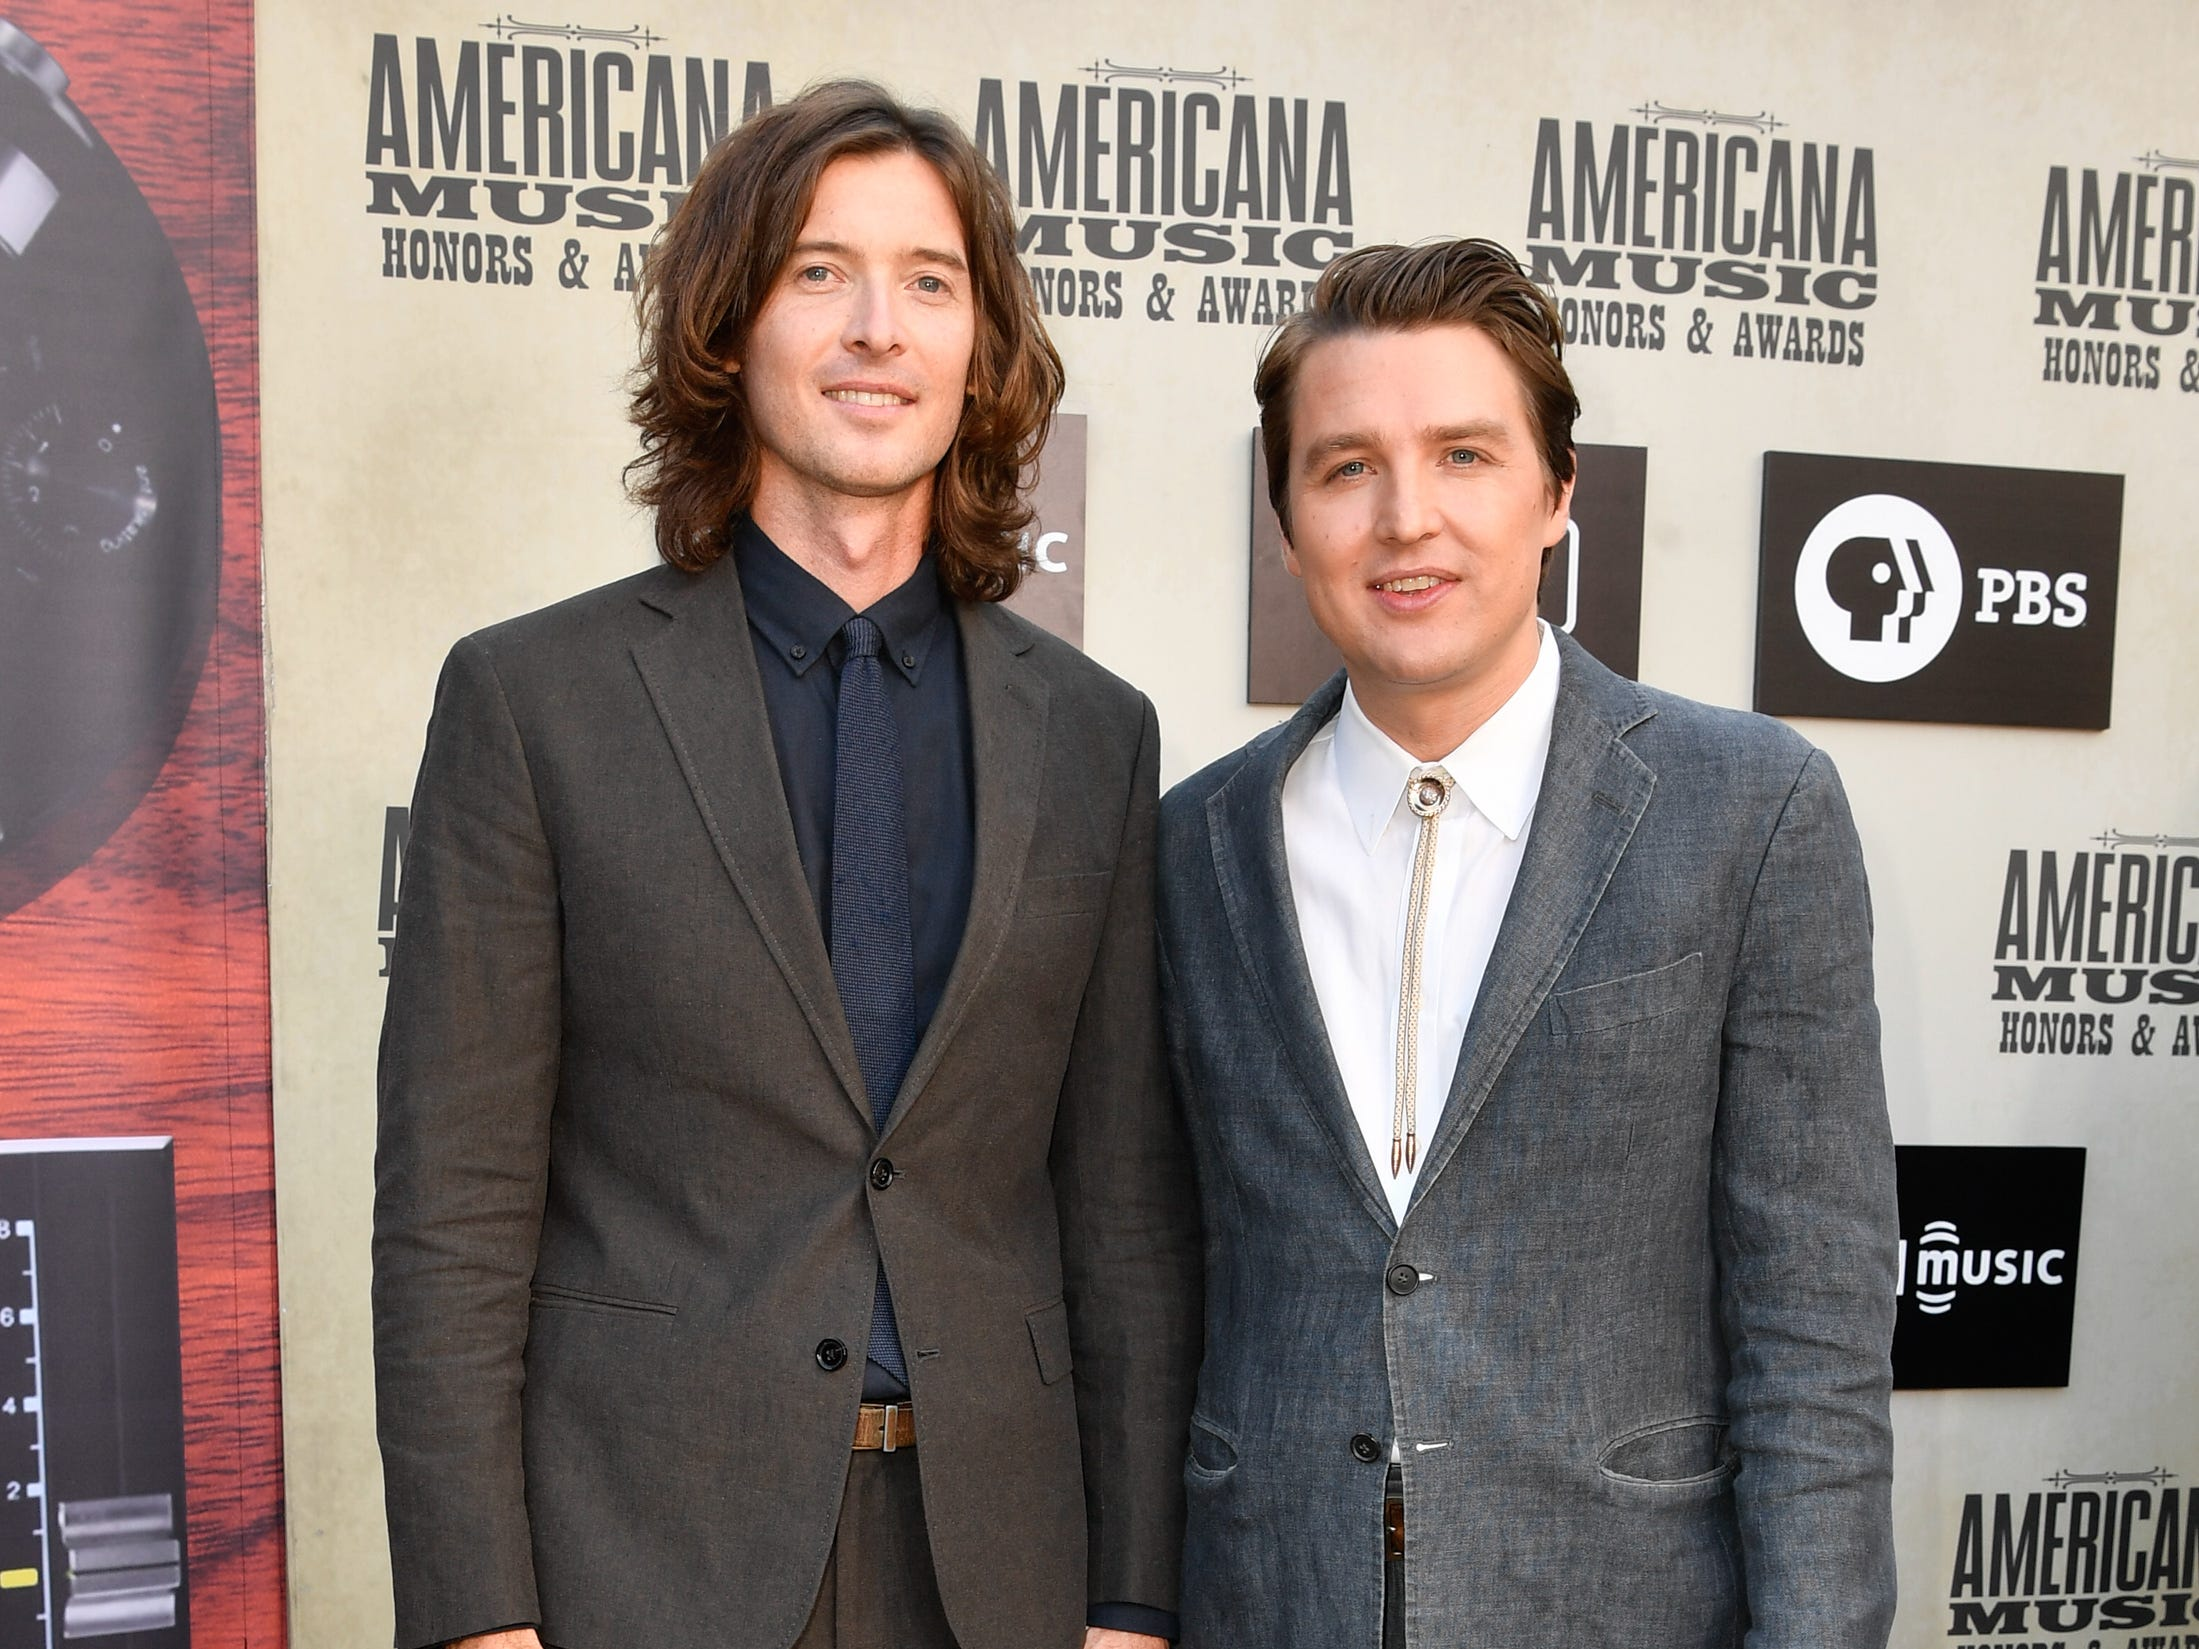 The Milk Carton Kids pose on the red carpet before the 2018 Americana Honors and Awards show at the Ryman Auditorium in Nashville, Tenn., Wednesday, Sept. 12, 2018.